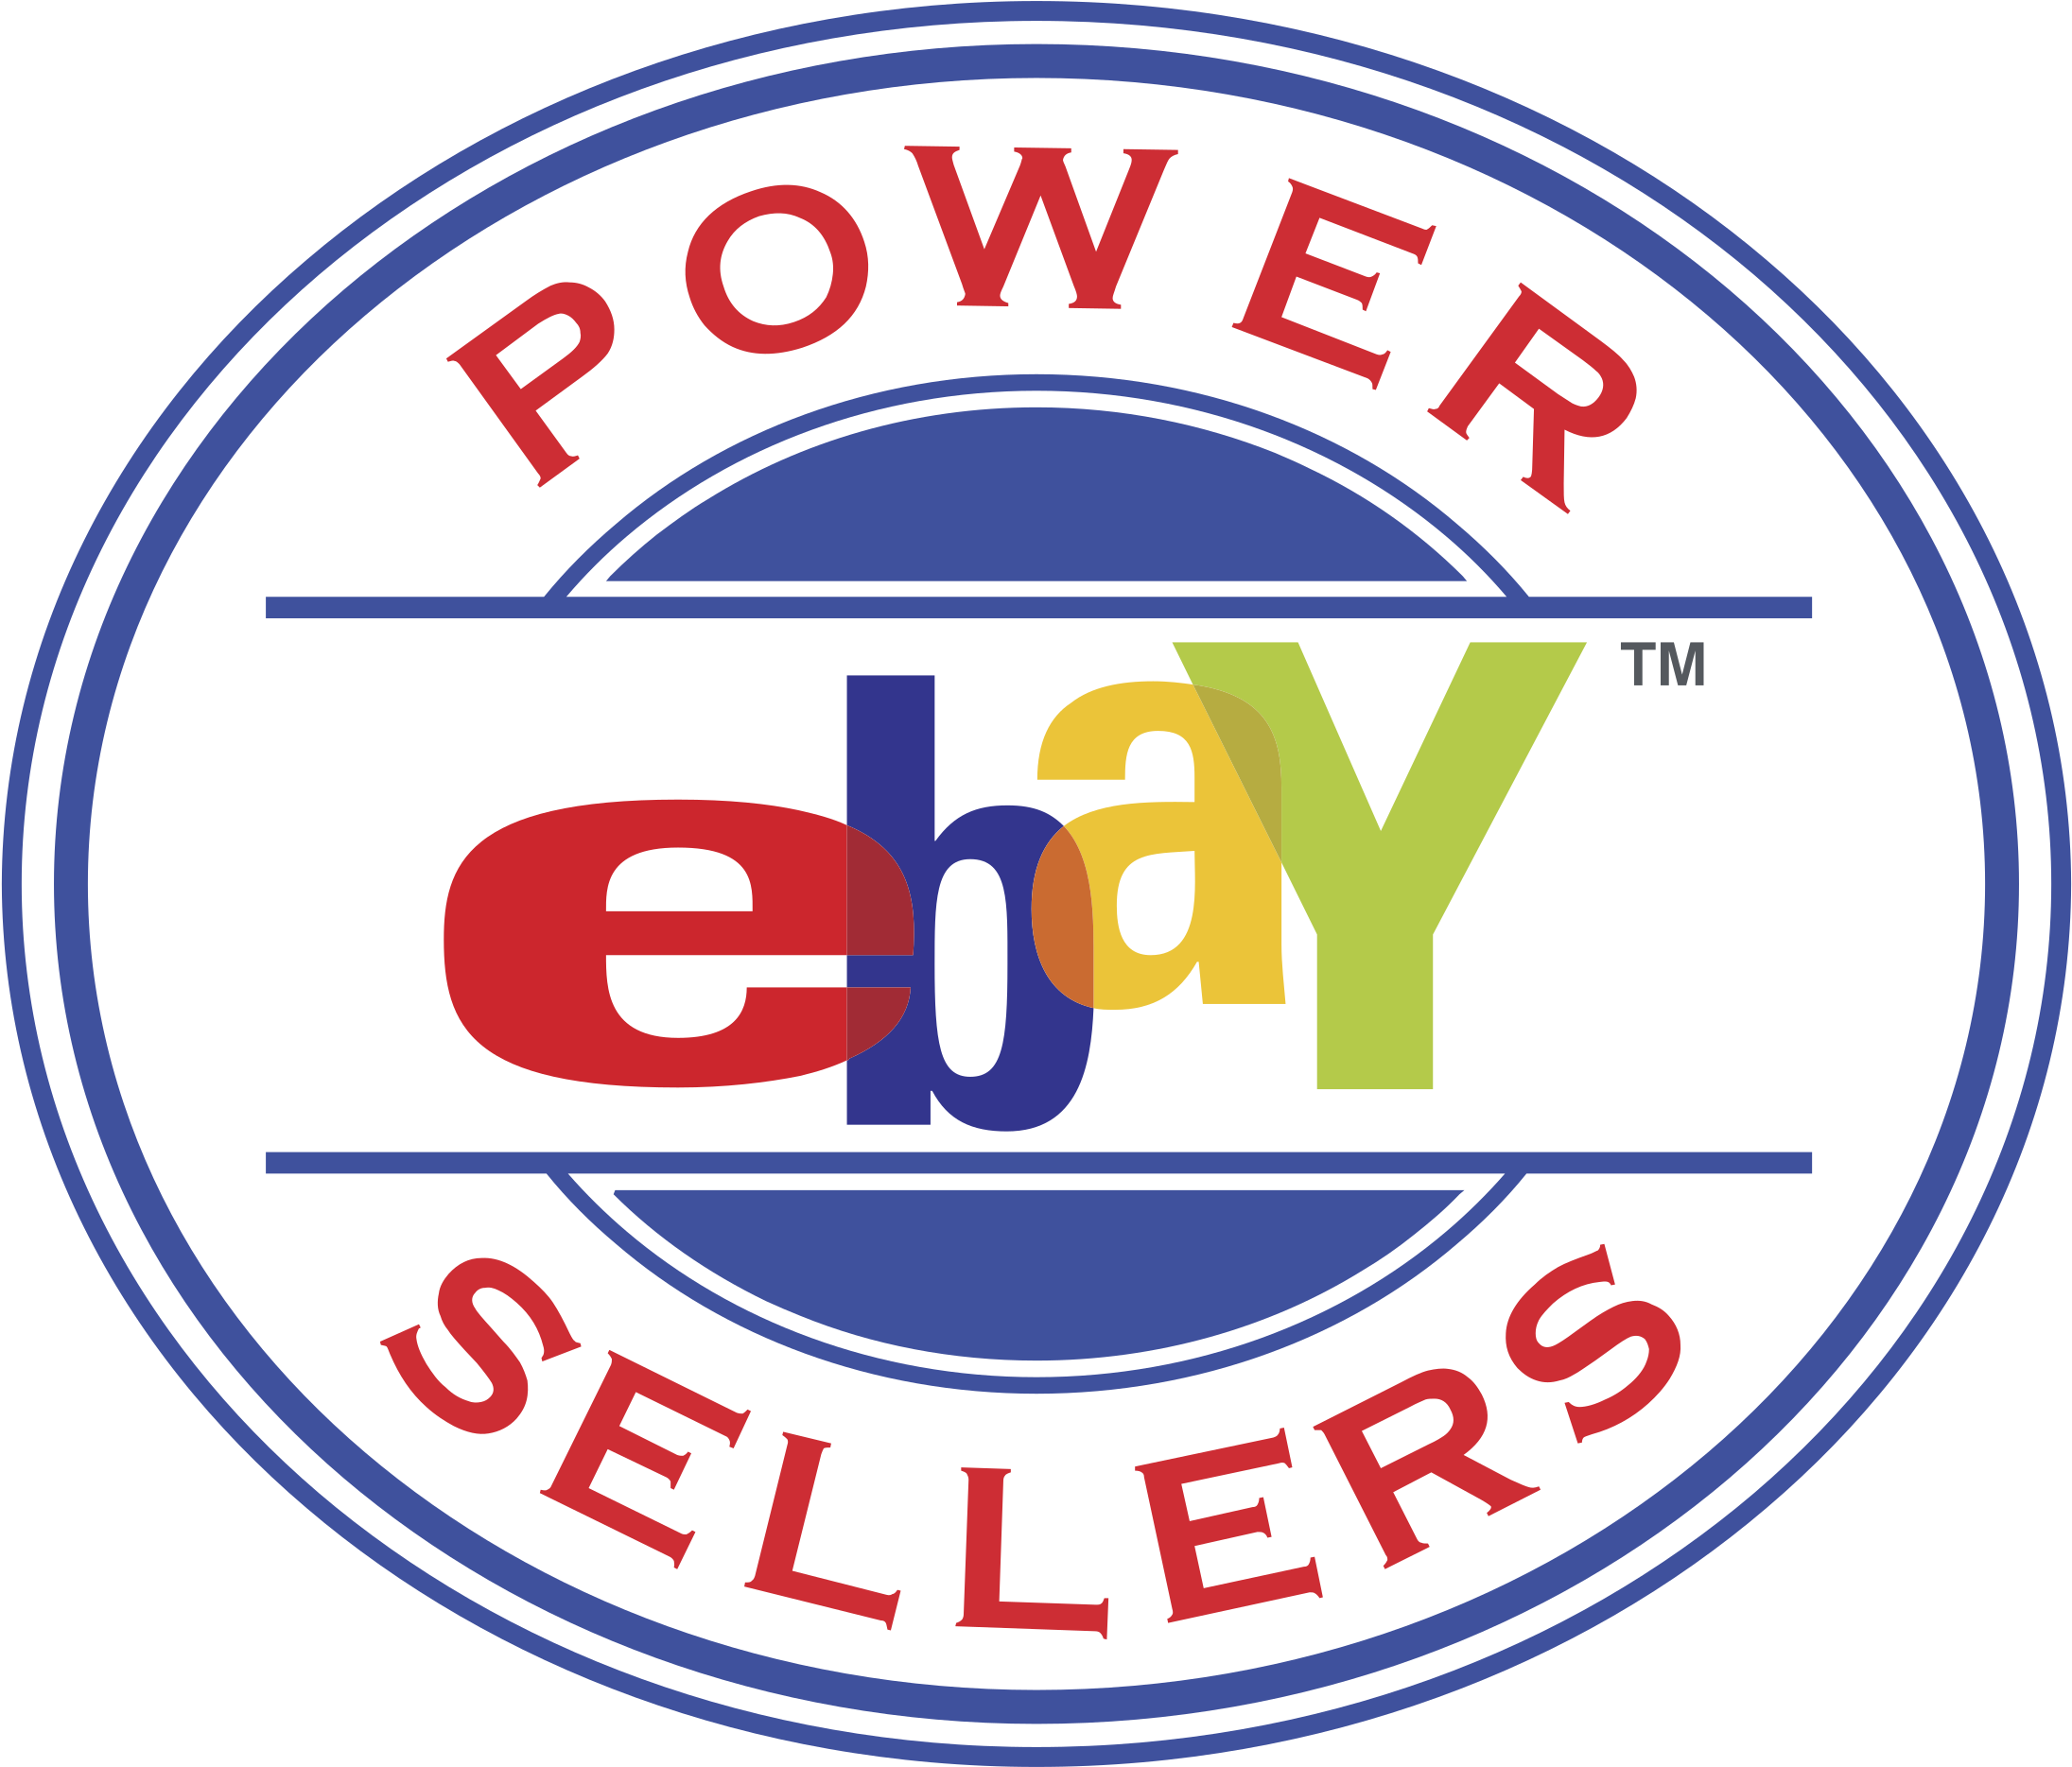 Download Ebay Power Sellers Logo Png Transparent Png Image With No Background Pngkey Com